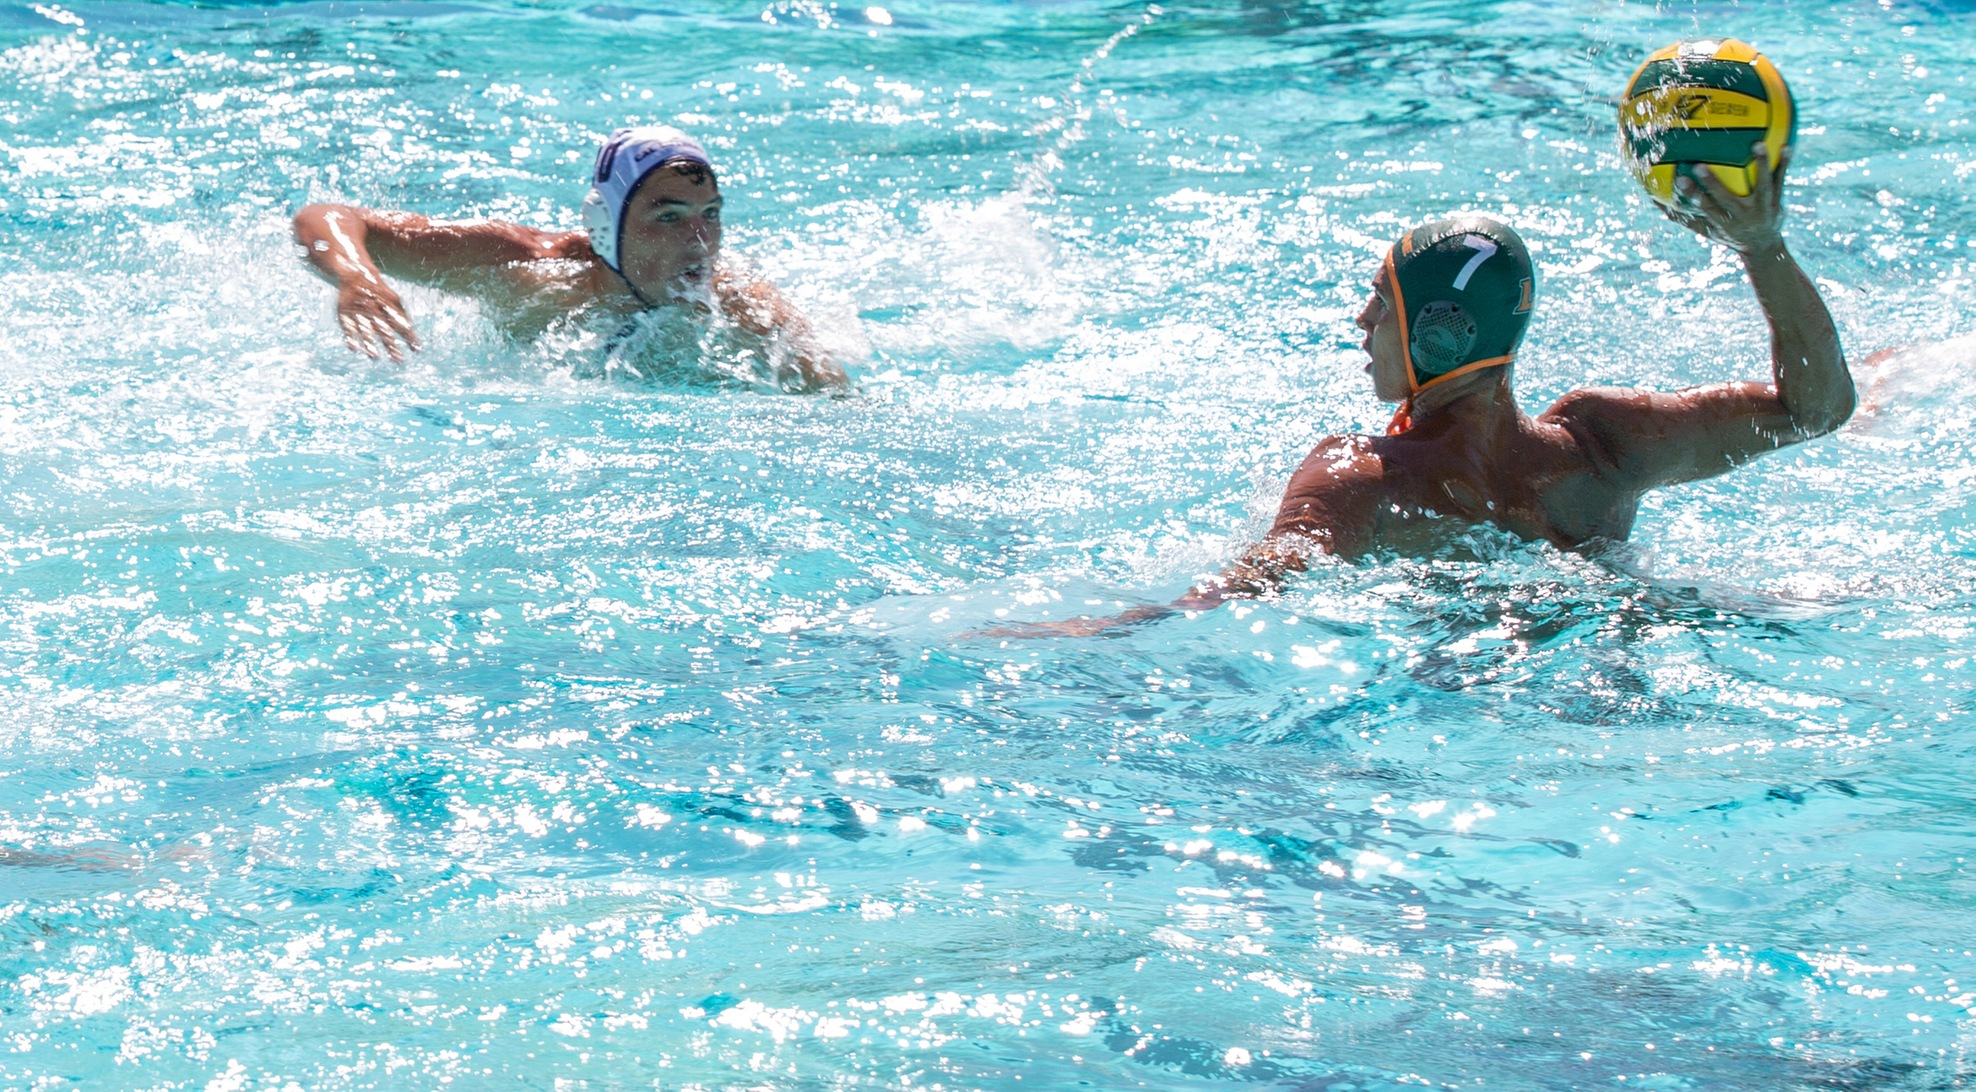 Ortega scores eight, MWP rolls past Caltech